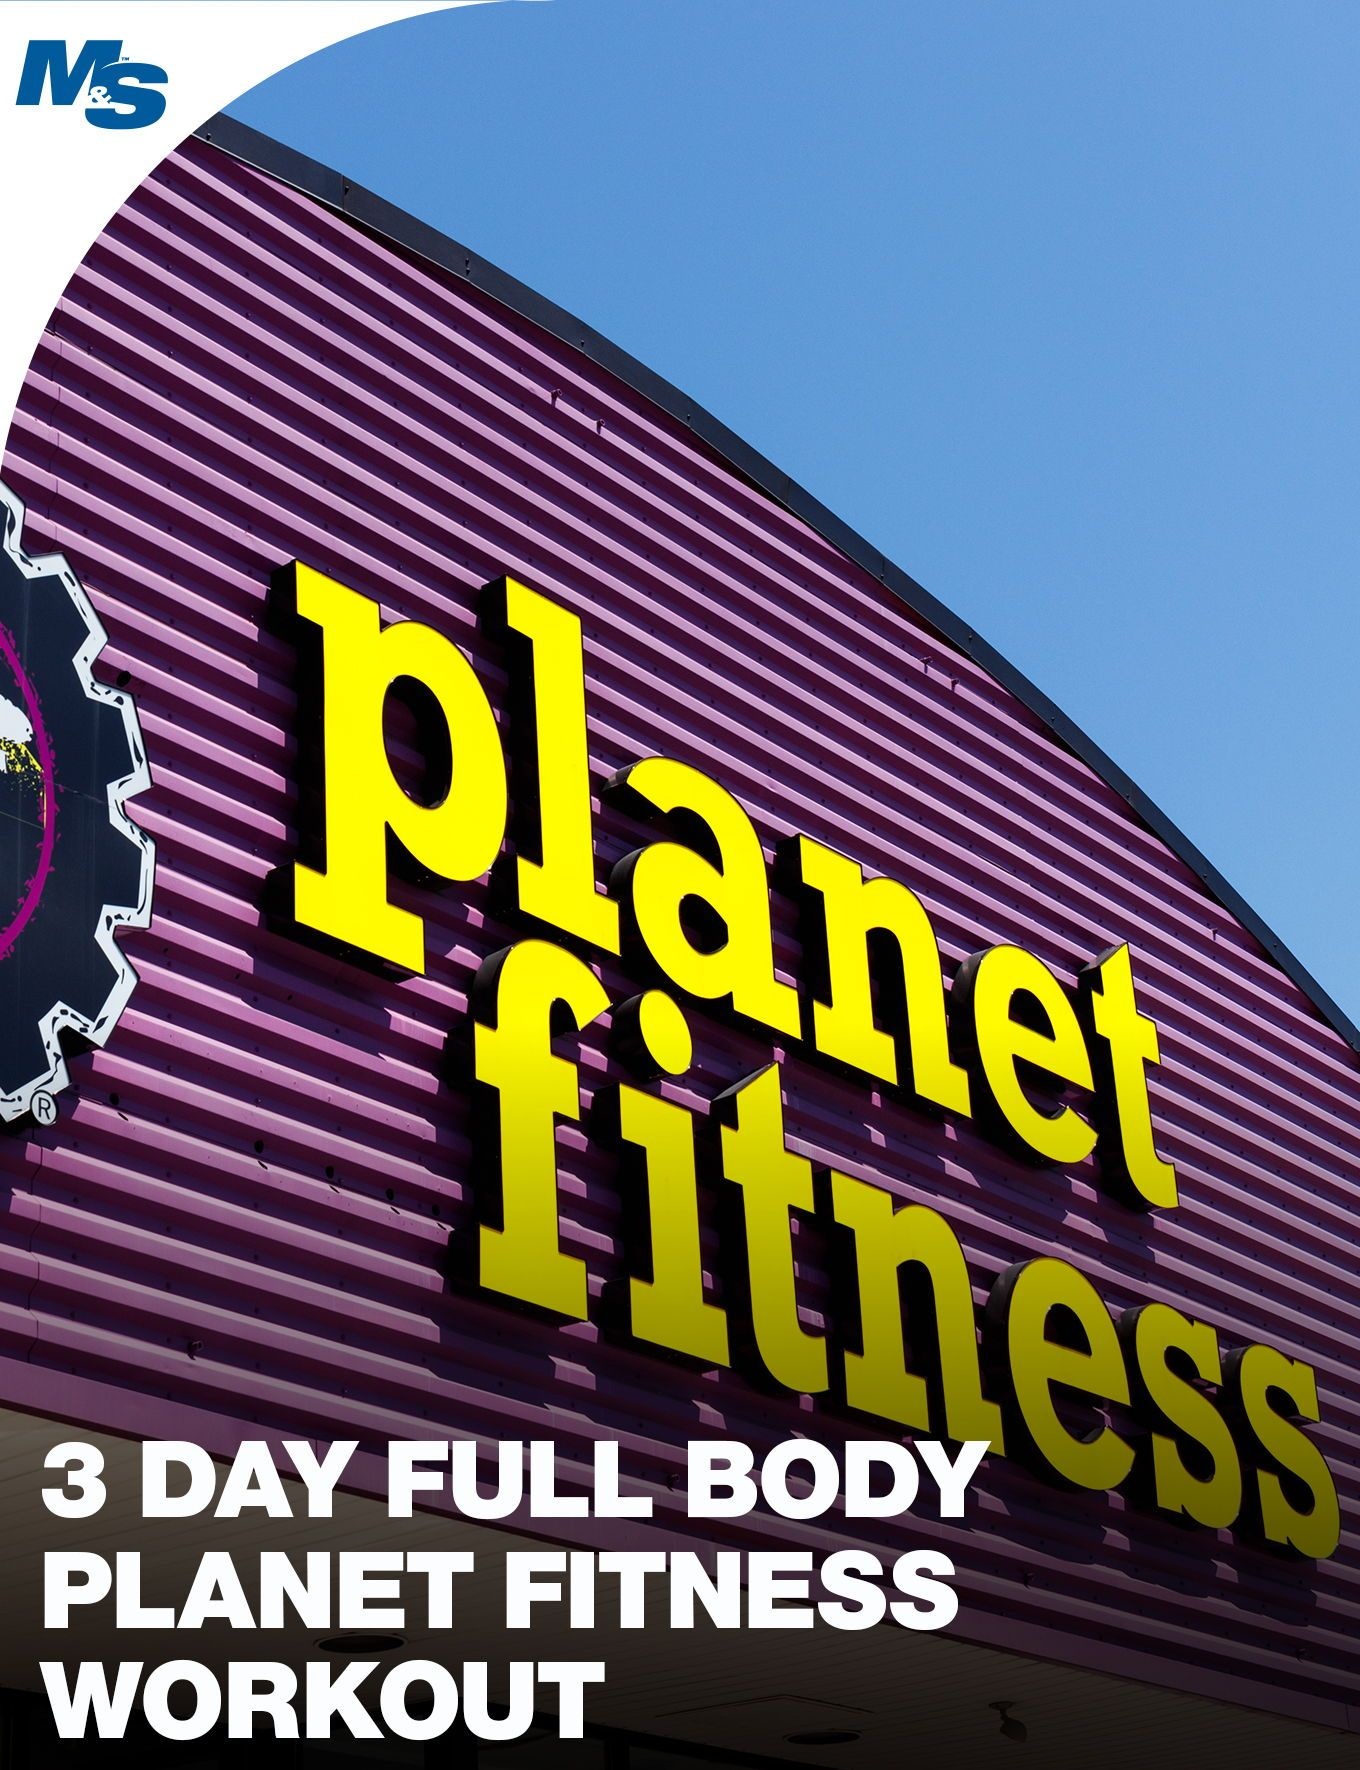 3 Day Full Body Planet Fitness Workout (Machines & Dumbbells Only)